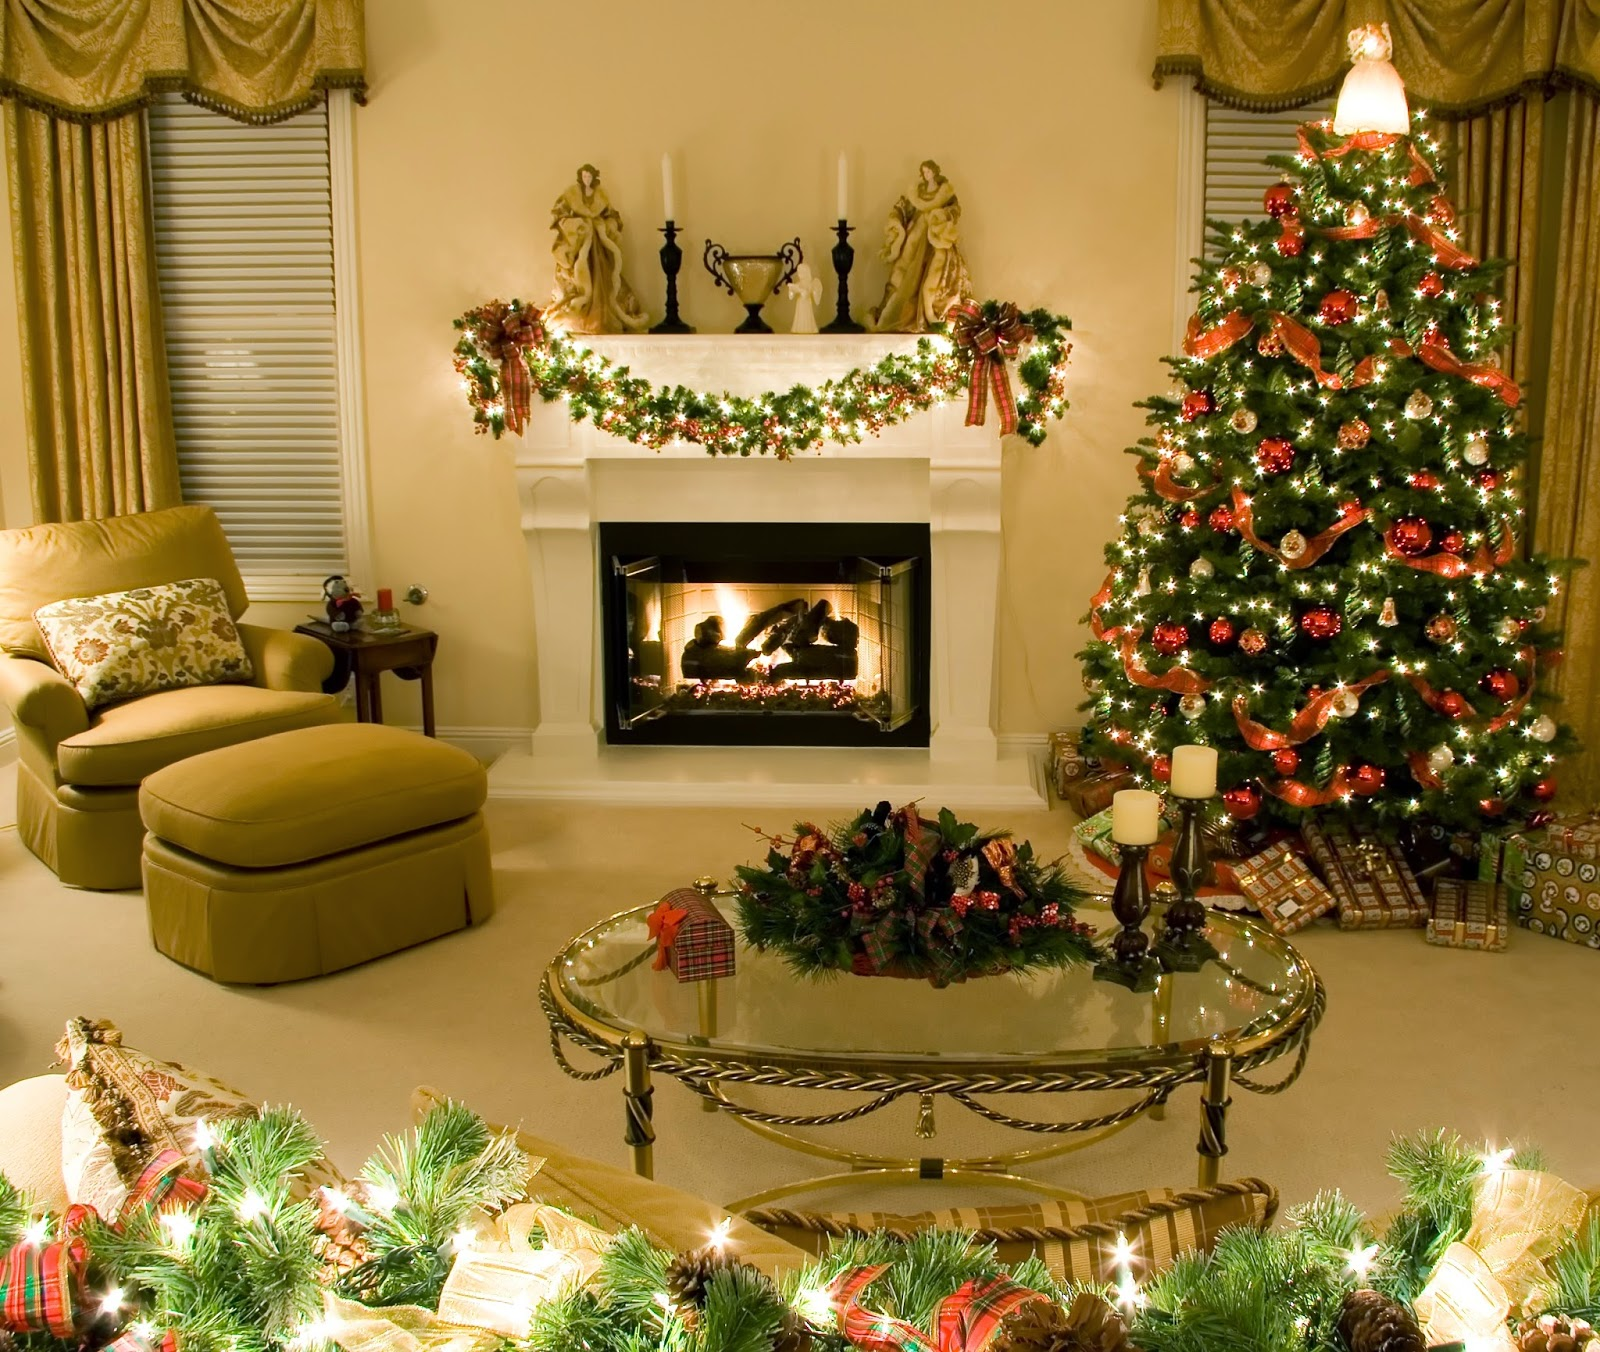 Christmas-decoration-hall-with-tree-table-gifts-image-picture-HD.jpg